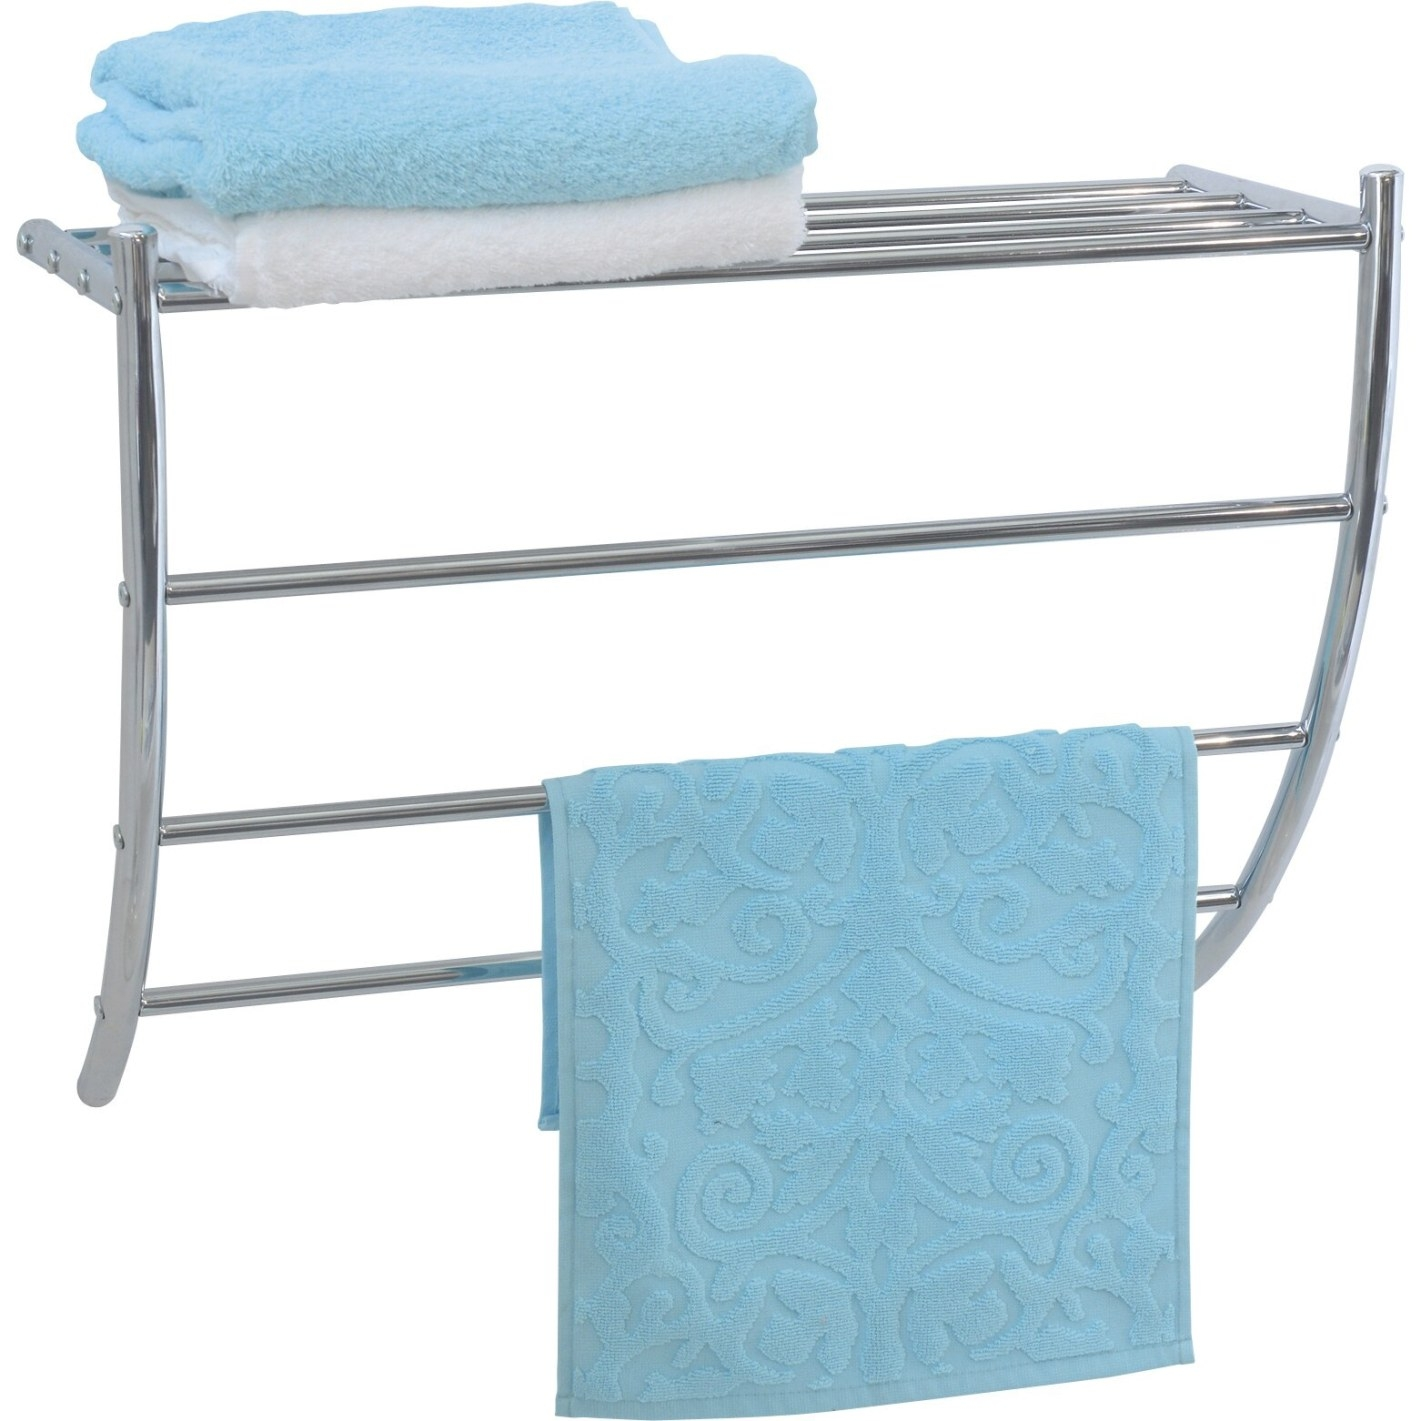 Evideco Wall Mounted Bath Shelf And Towel Rack & Reviews in Towel Racks For Small Bathrooms